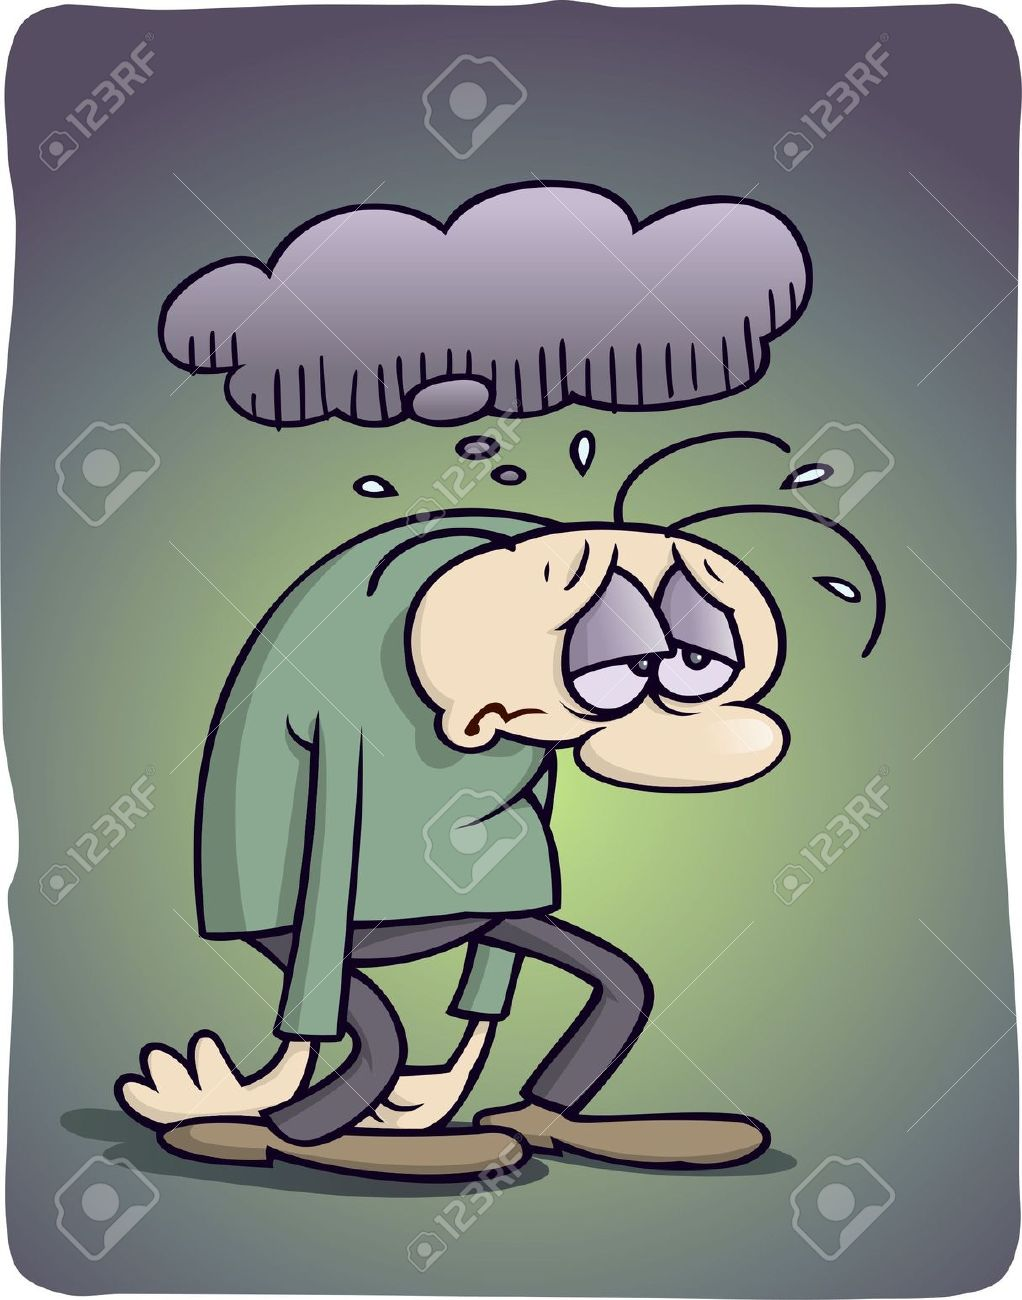 Depressed Cartoon Character Stock Photo Picture And Royalty Free Image Image 4396785